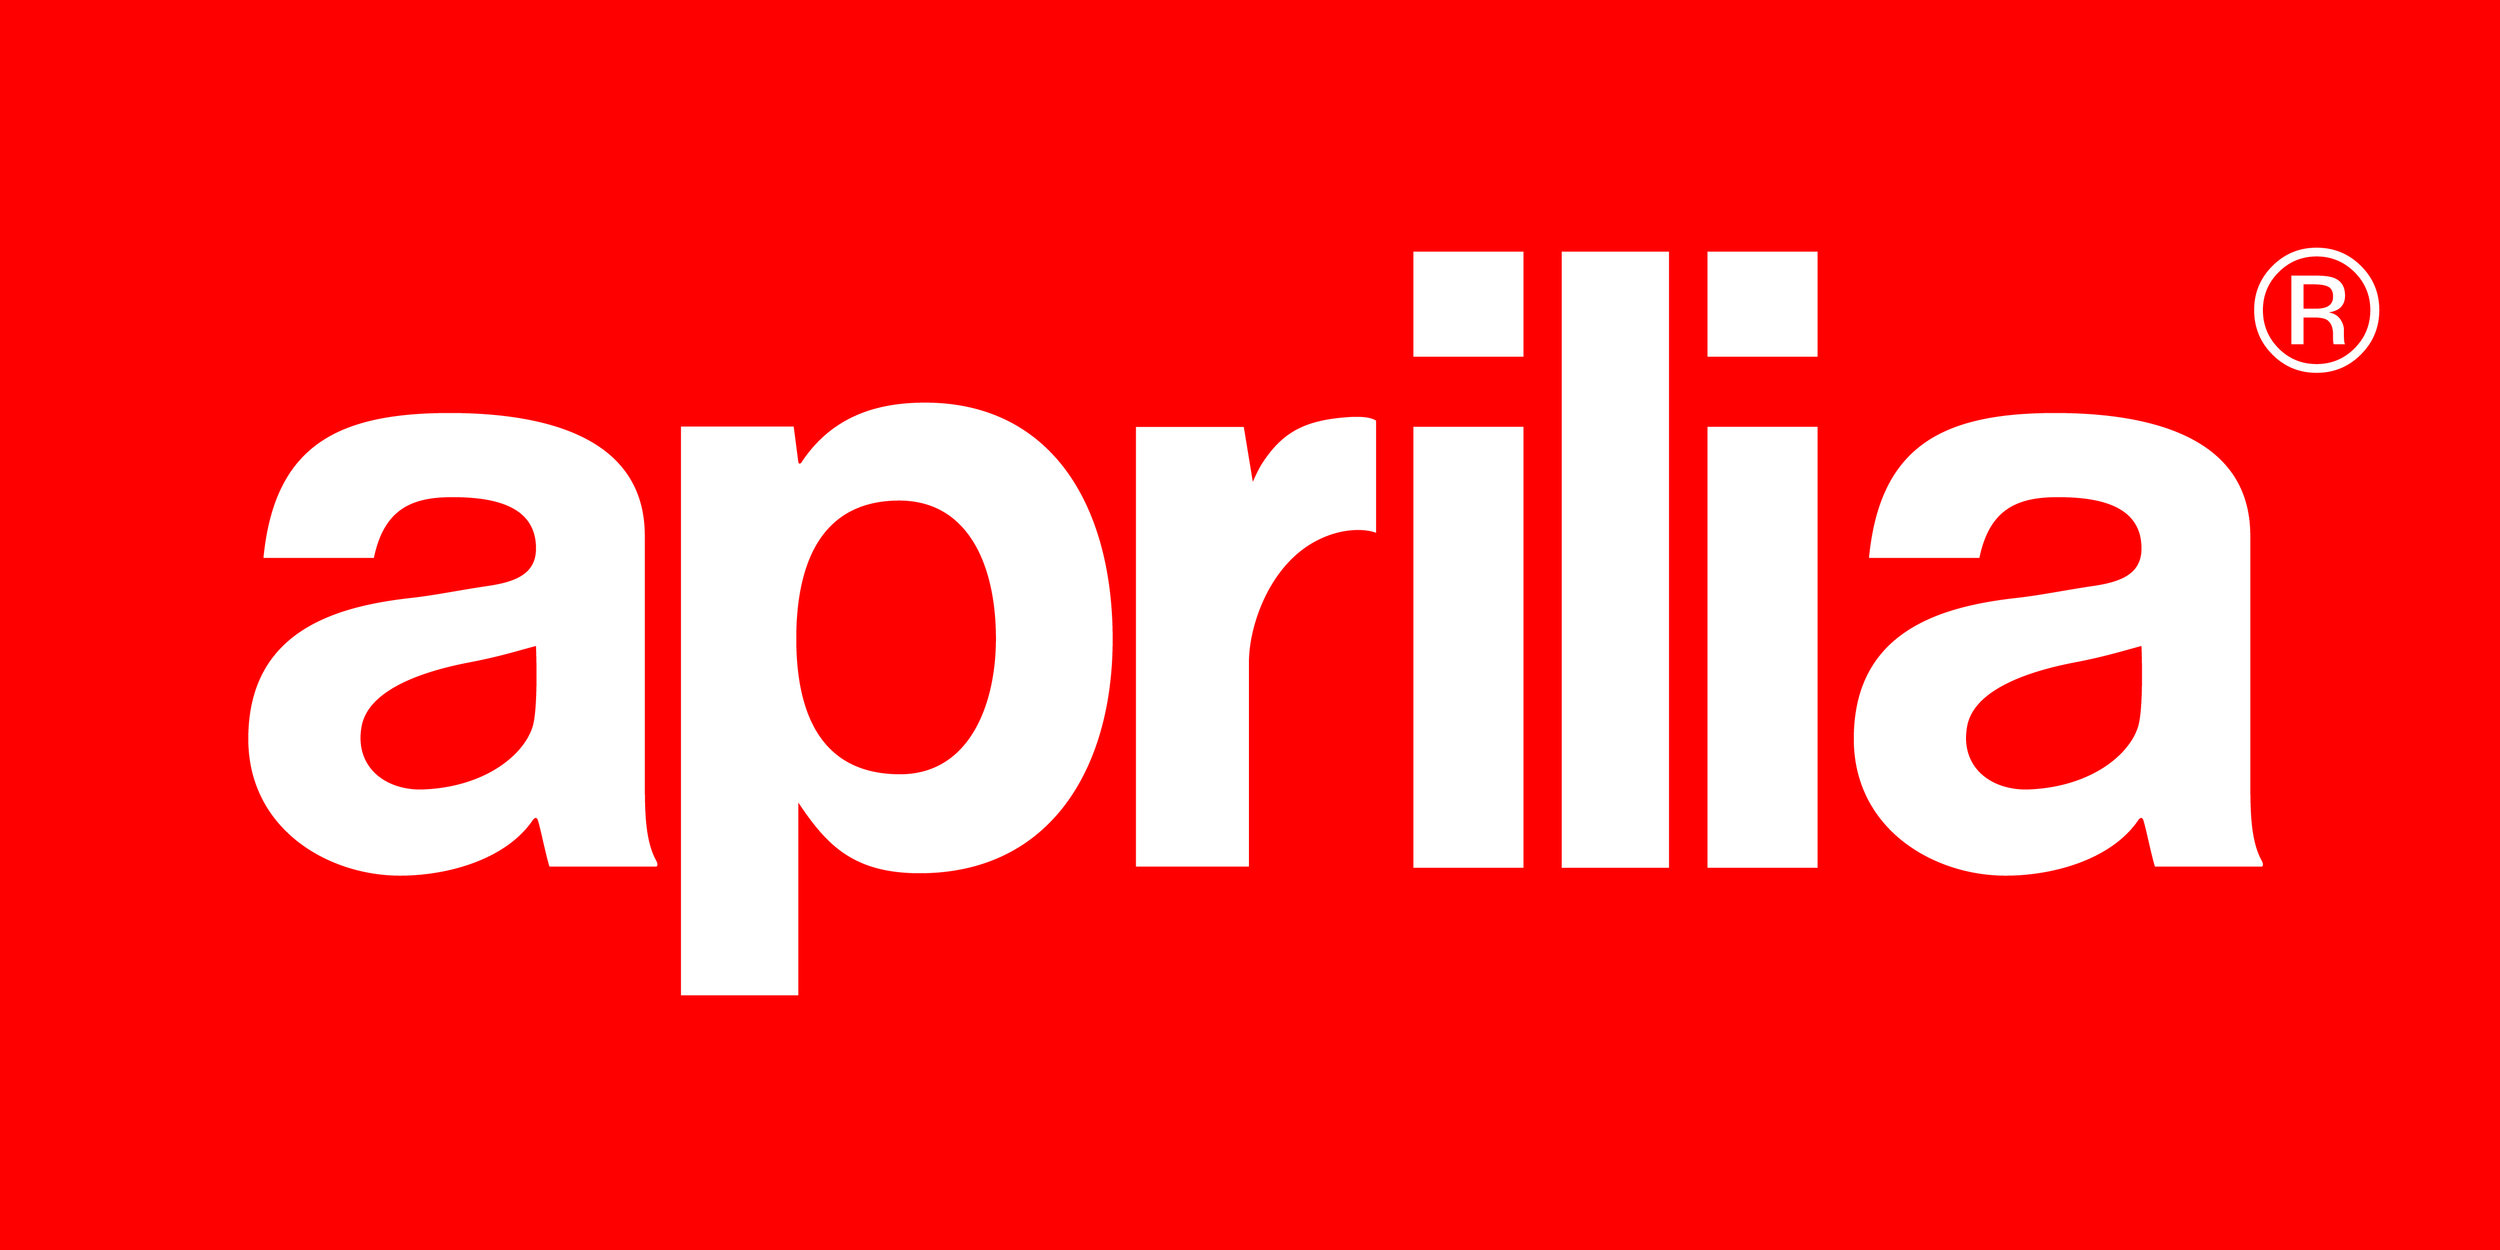 Aprilia_official logo w registred mark_ low resolution.jpg